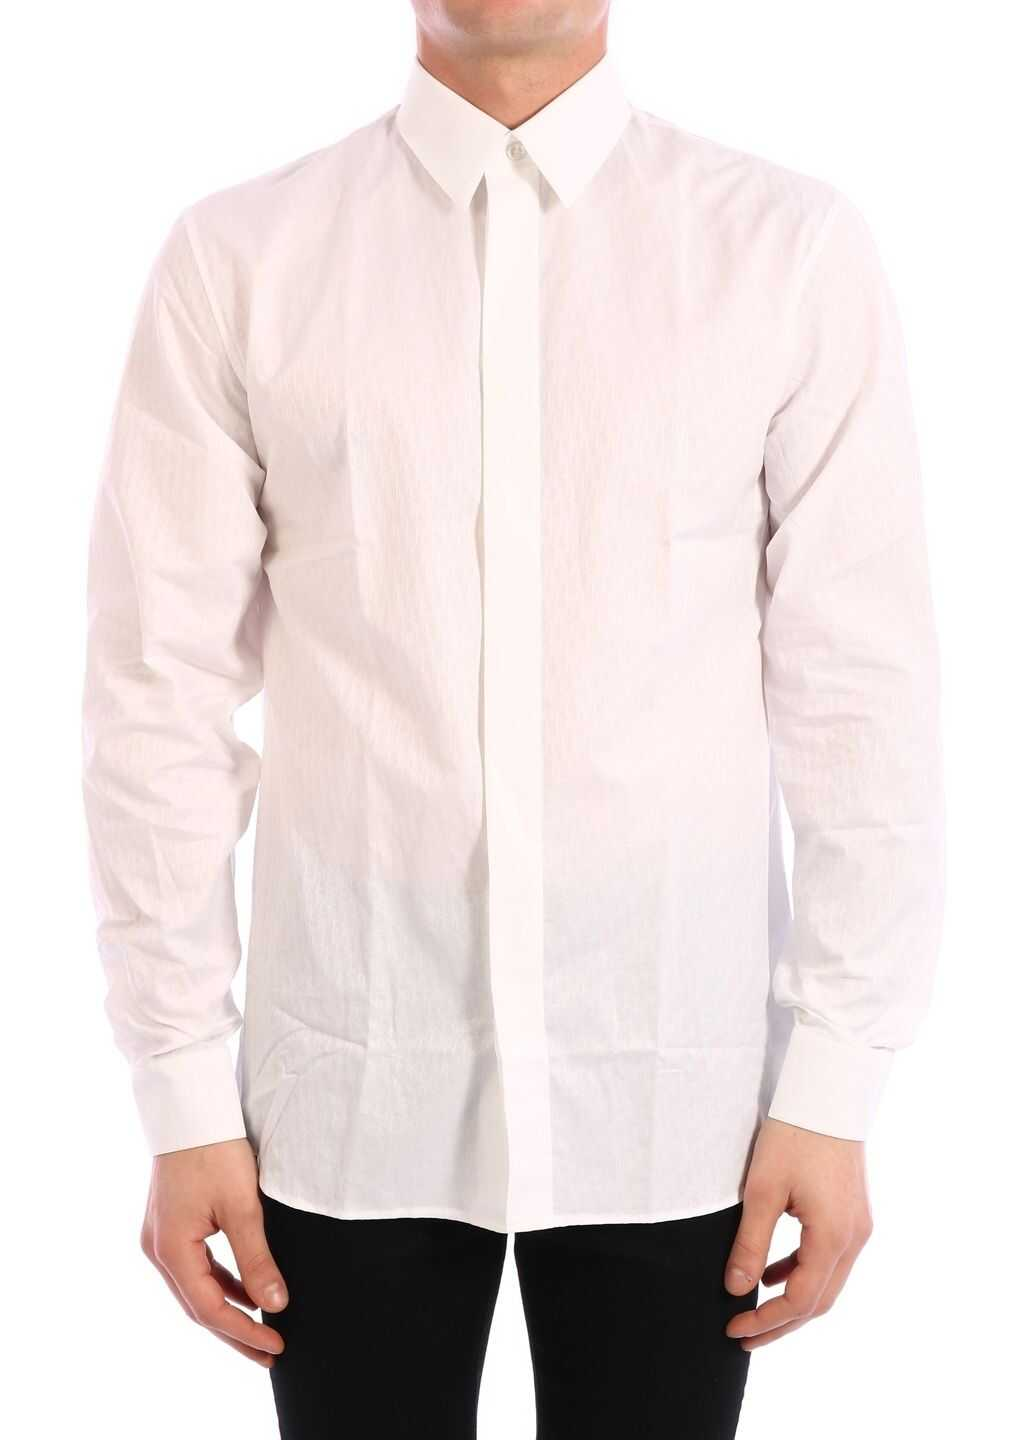 Dior Shirt In Cotton Jacquard White